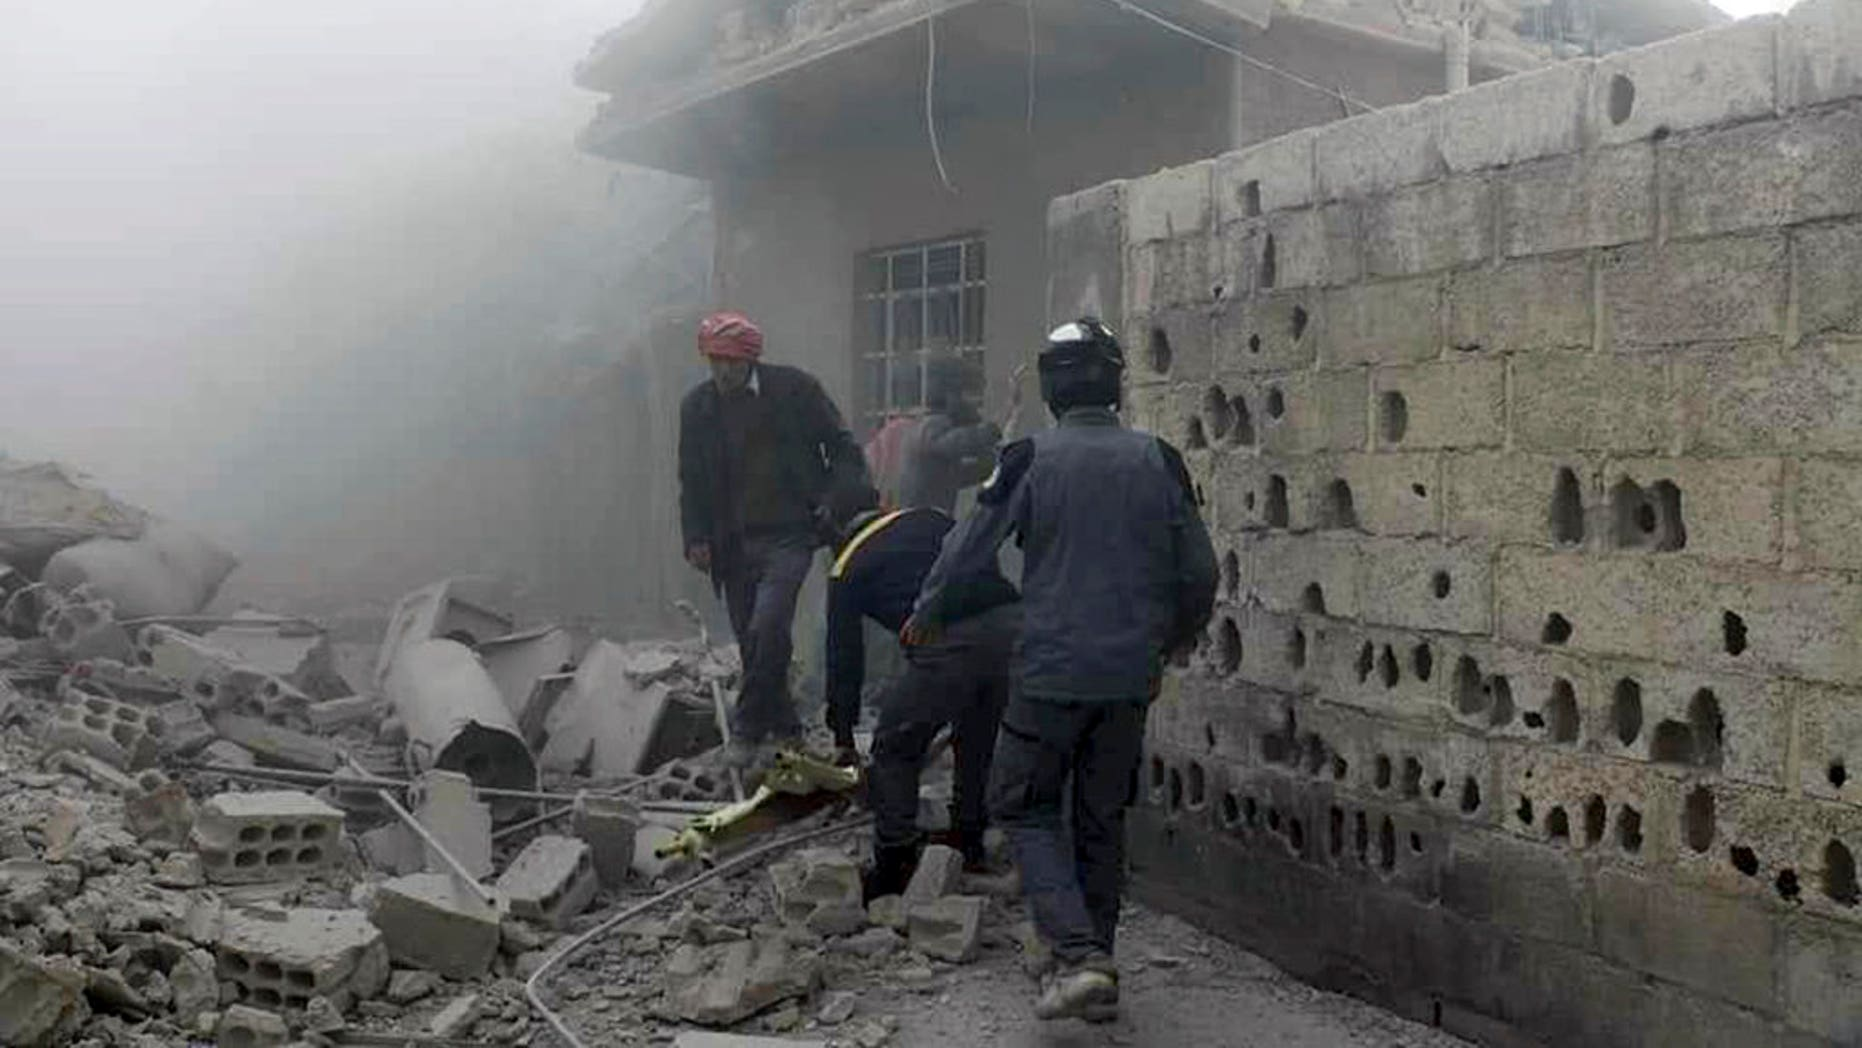 Members of the Syrian Civil Defense group and civilians gathered to help survivors from a street attacked by airstrikes and shelling by Syrian government forces in Ghouta, a suburb of Damascus, Syria.